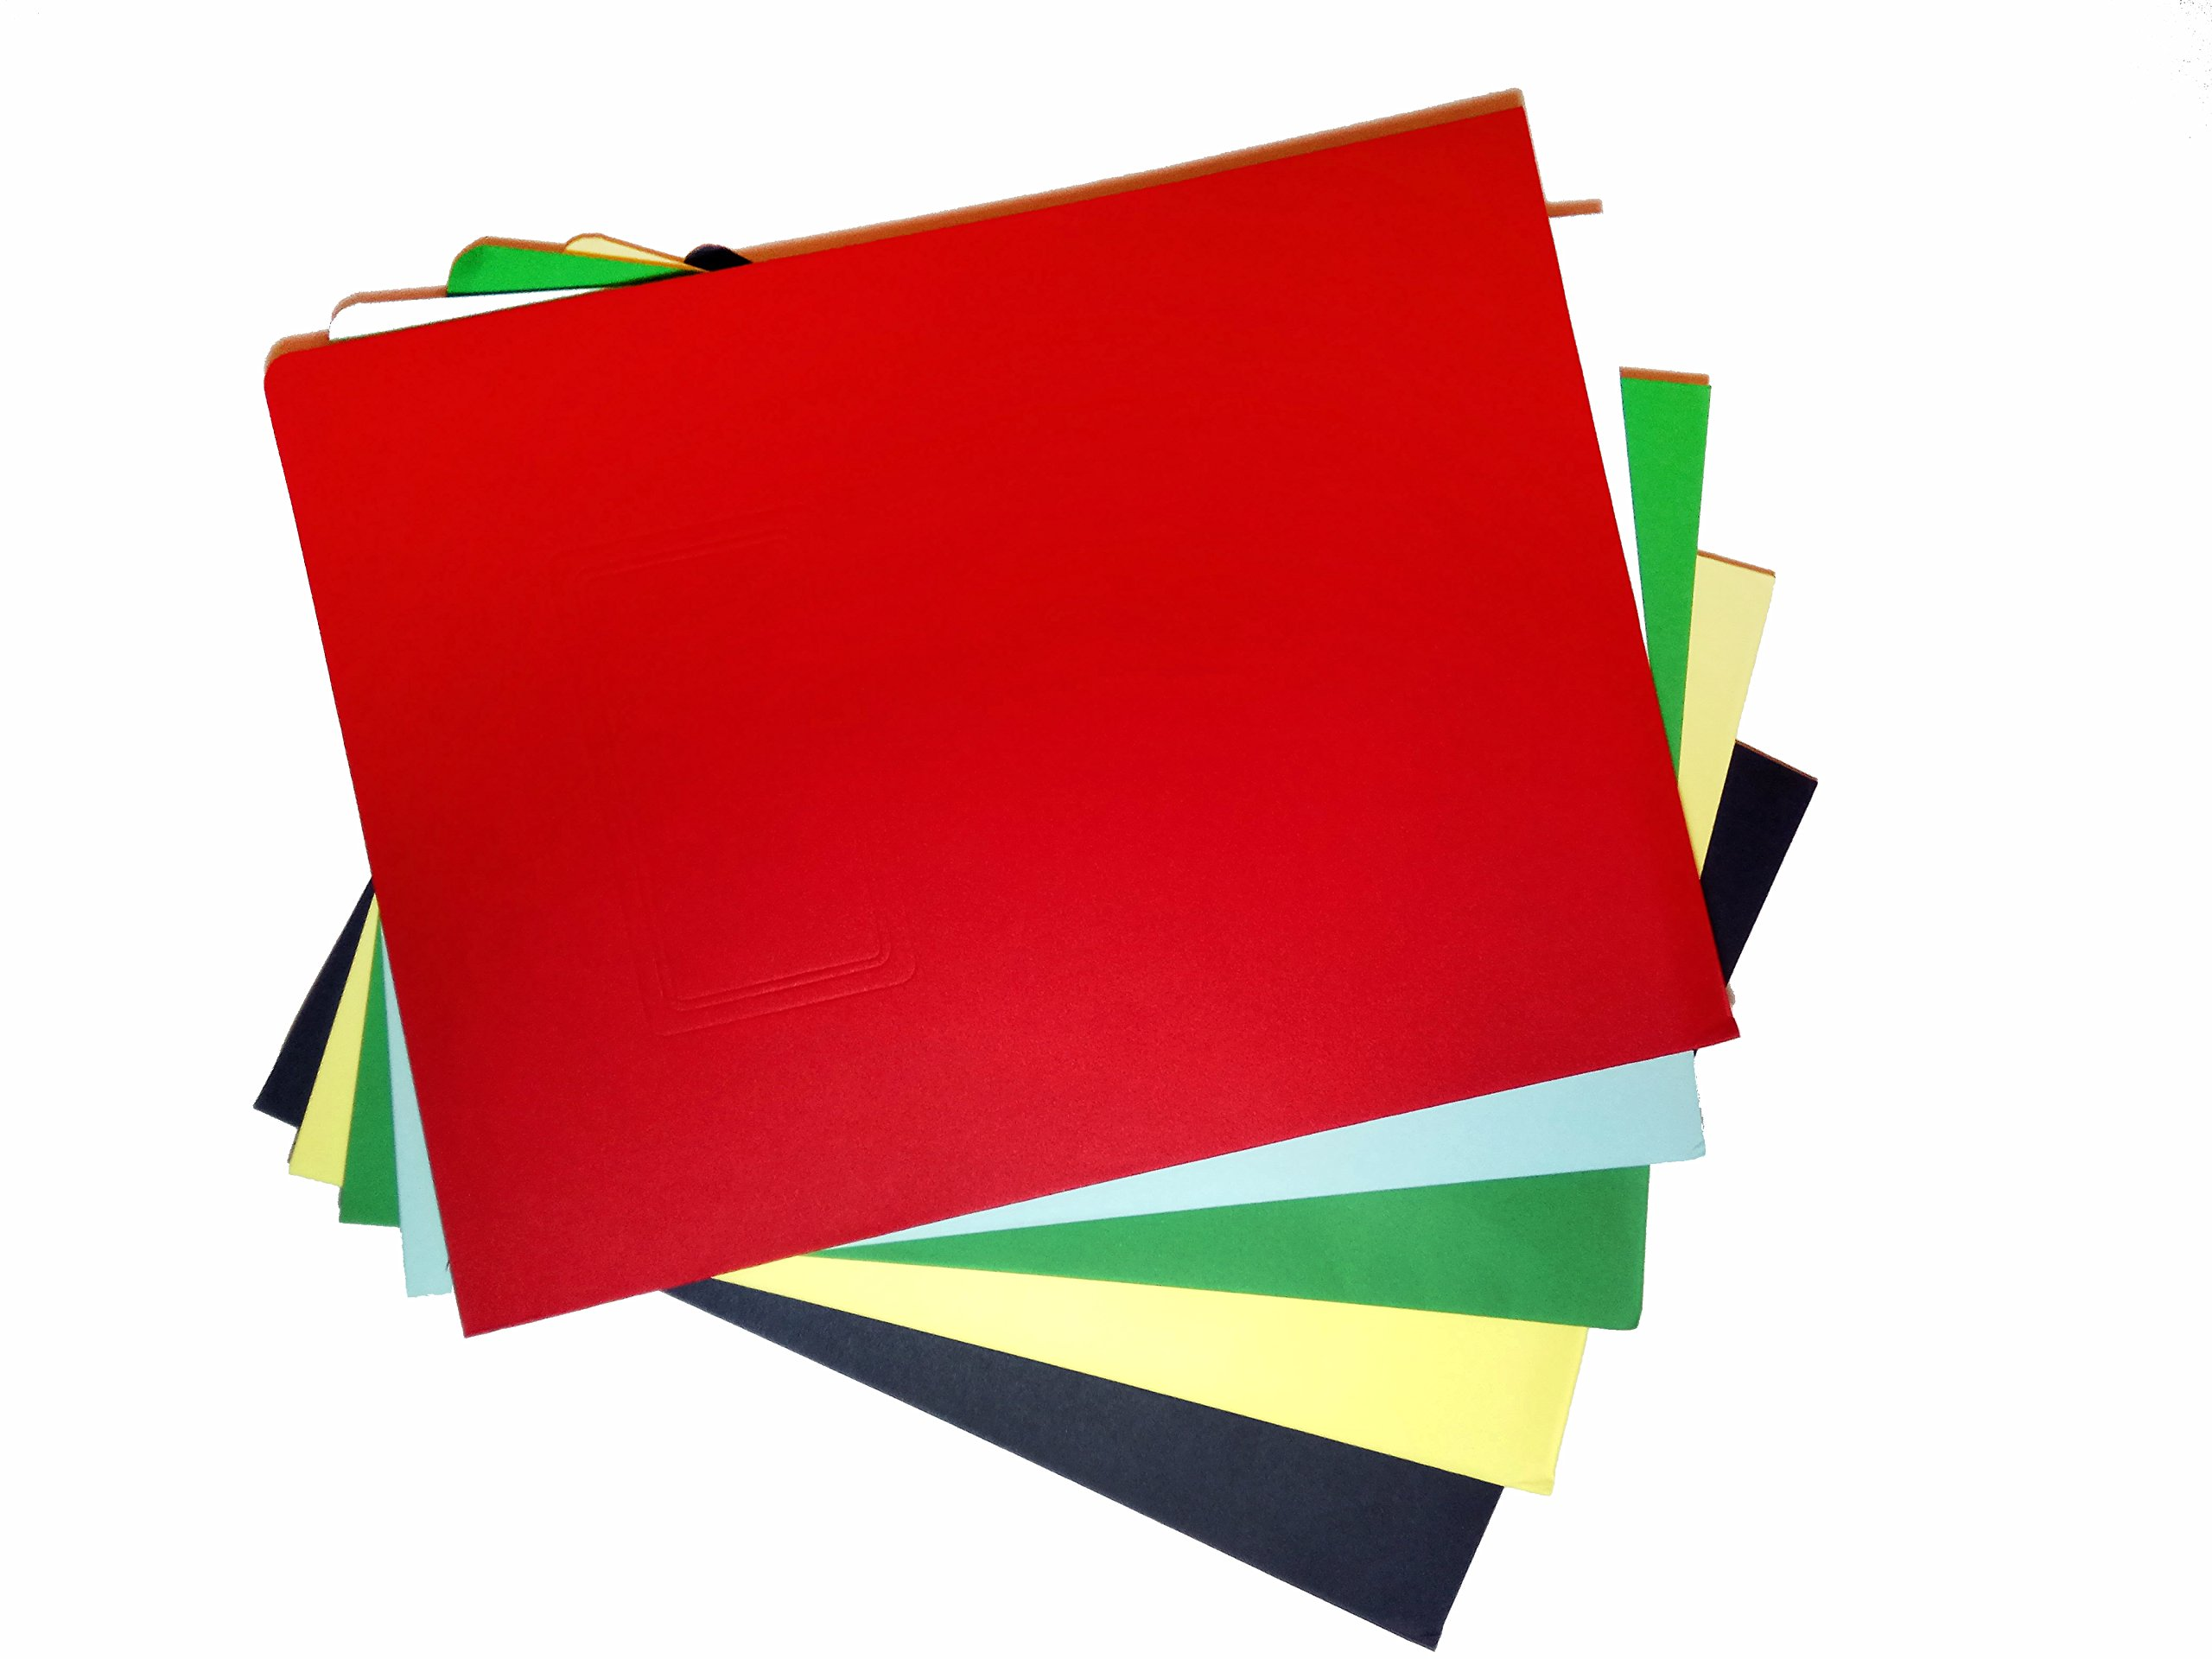 SchoolSupplies Set of 10 Colored Cardboard Folders: 12 X 9 Inch School, Office, or Business Paper Holders in Red, Blue, Green, Yellow, and Black